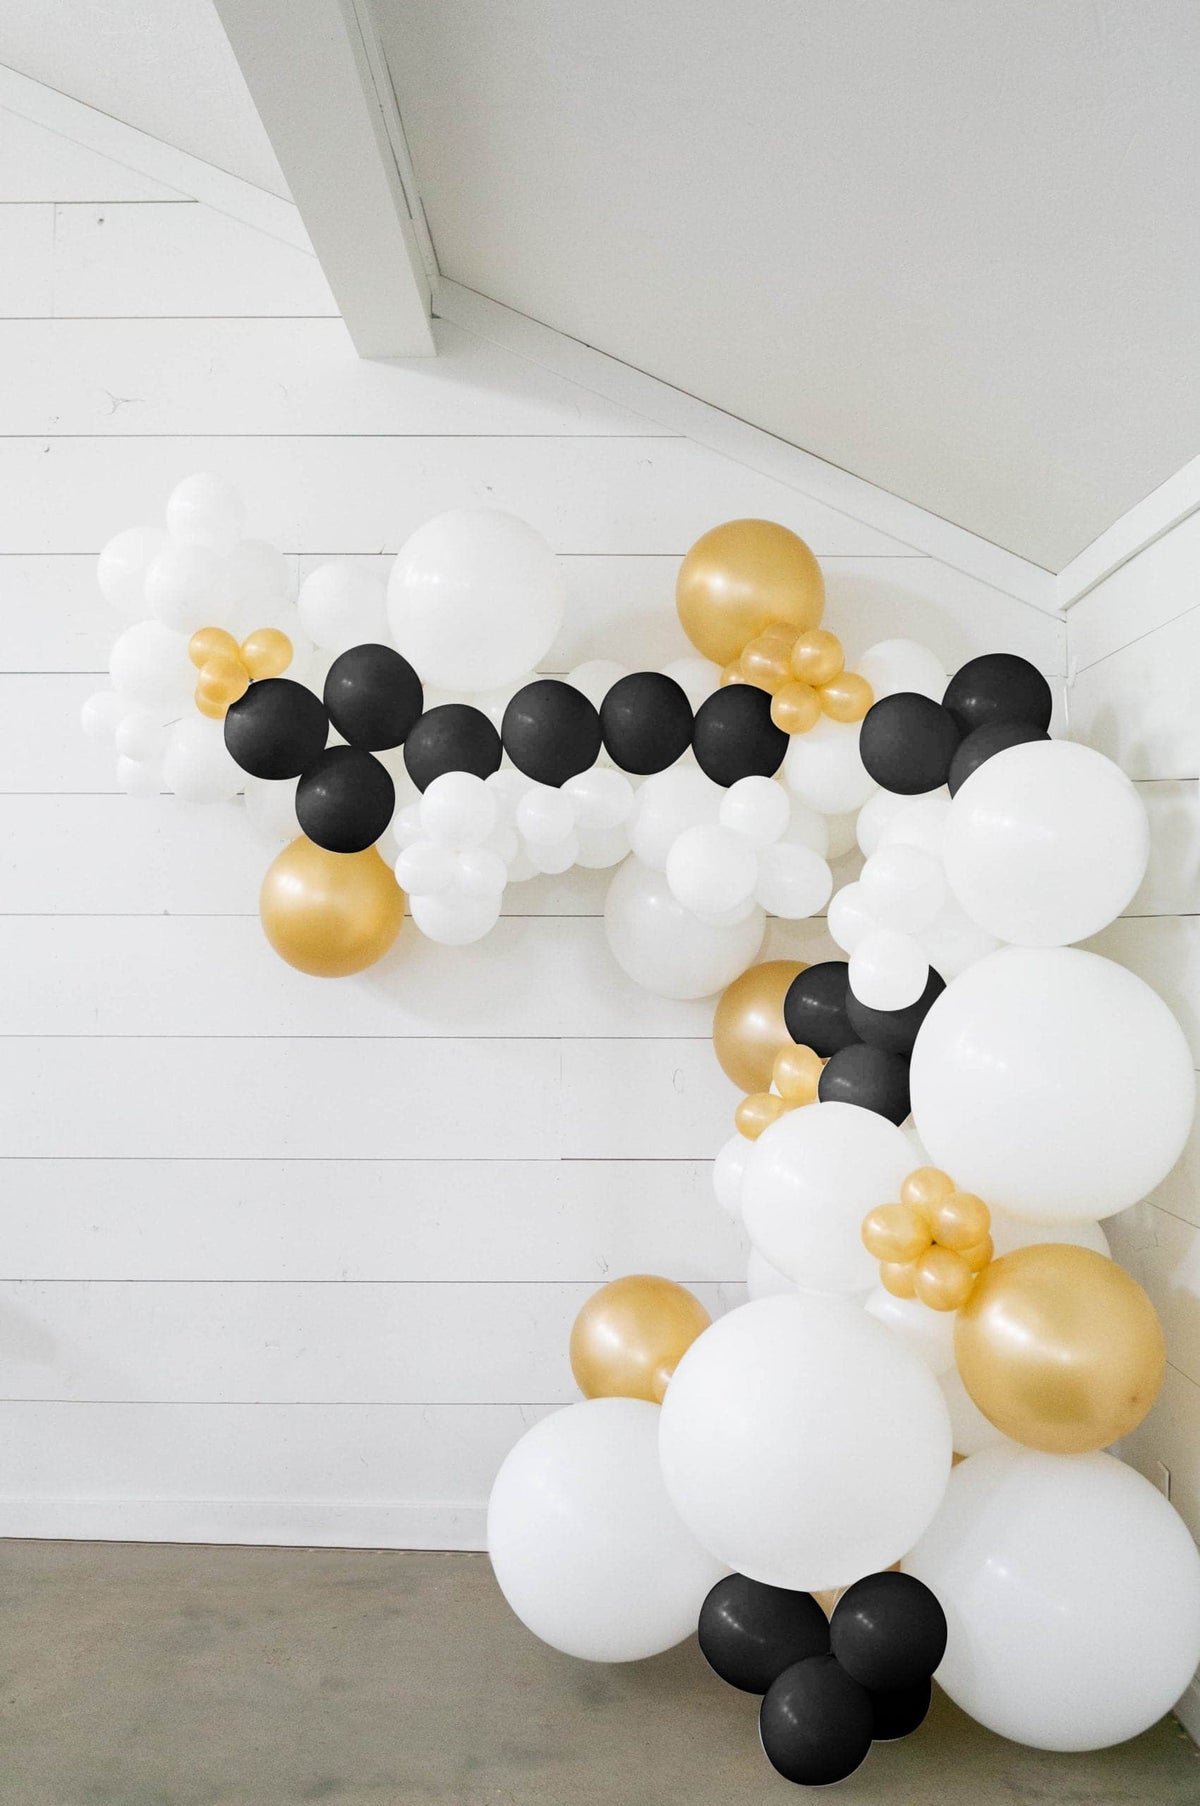 25 Ft Diy Balloon Garland Kit With White Black Gold Balloons Balloons And Weights